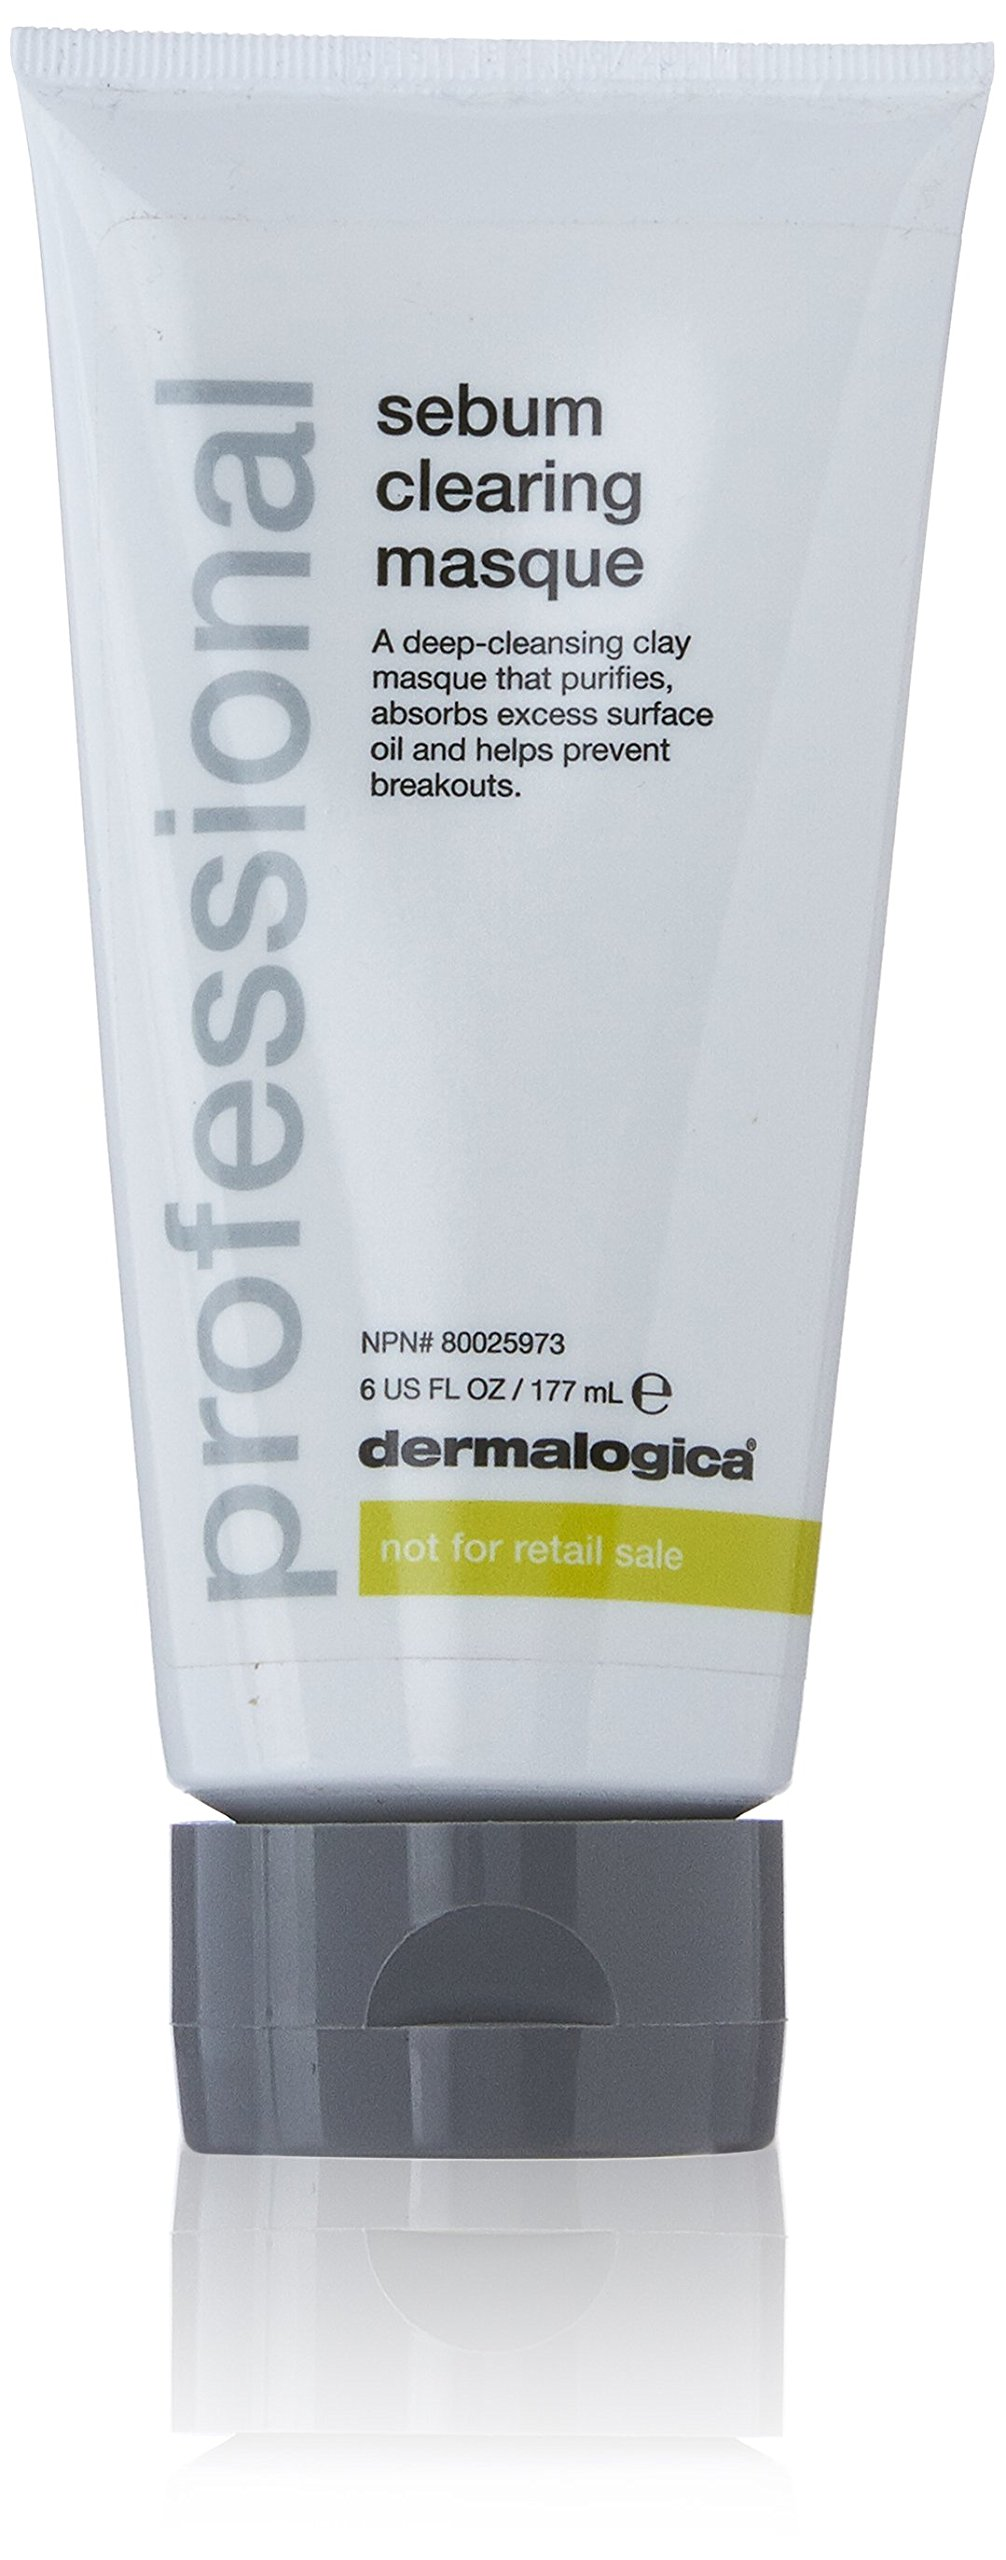 Dermalogica Sebum Clearing Masque, 6 Ounce